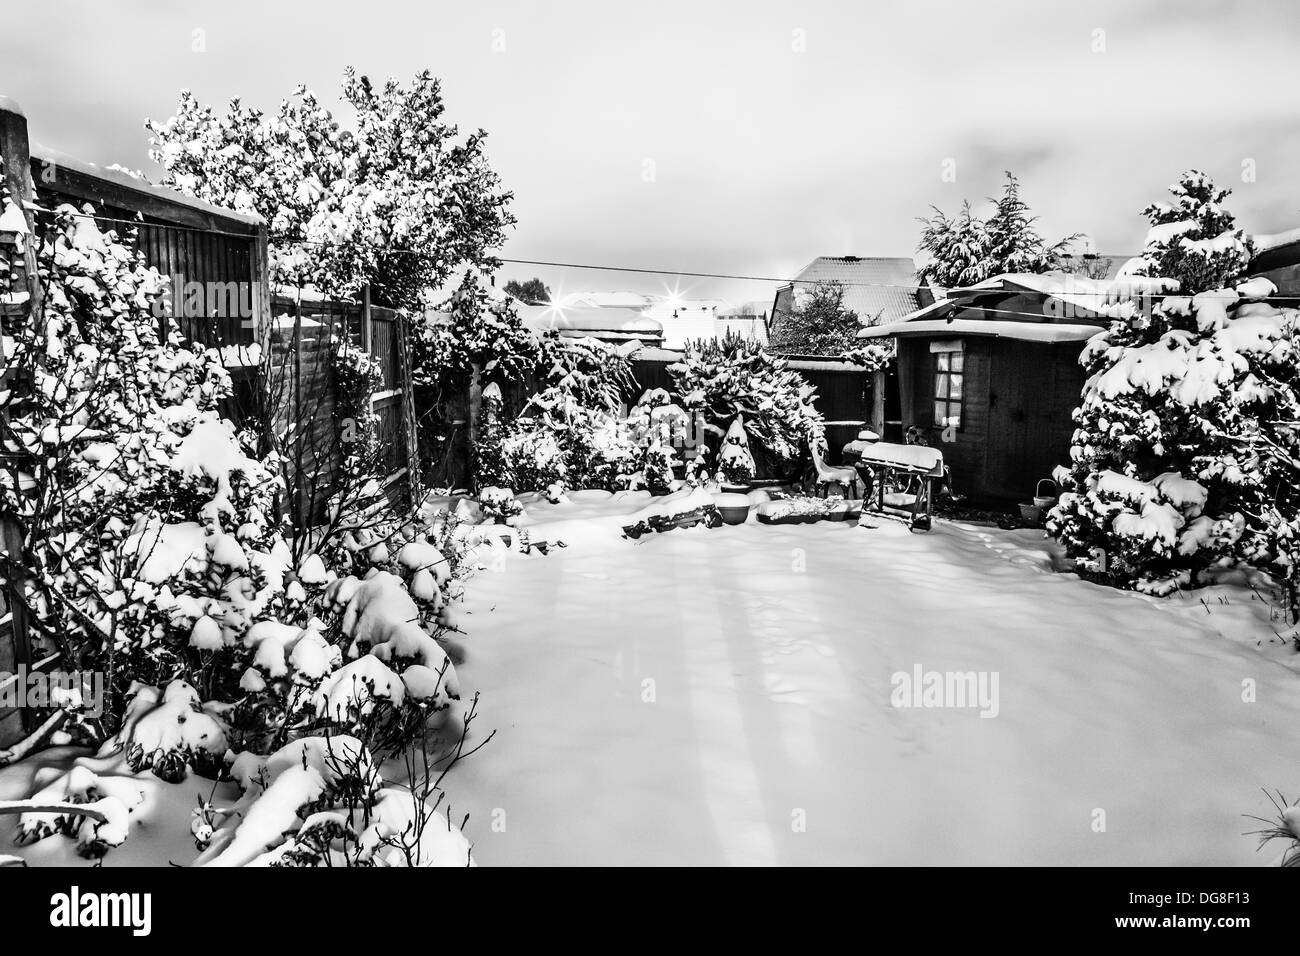 Snow Fall on English Cabin in the United Kingdom. - Stock Image